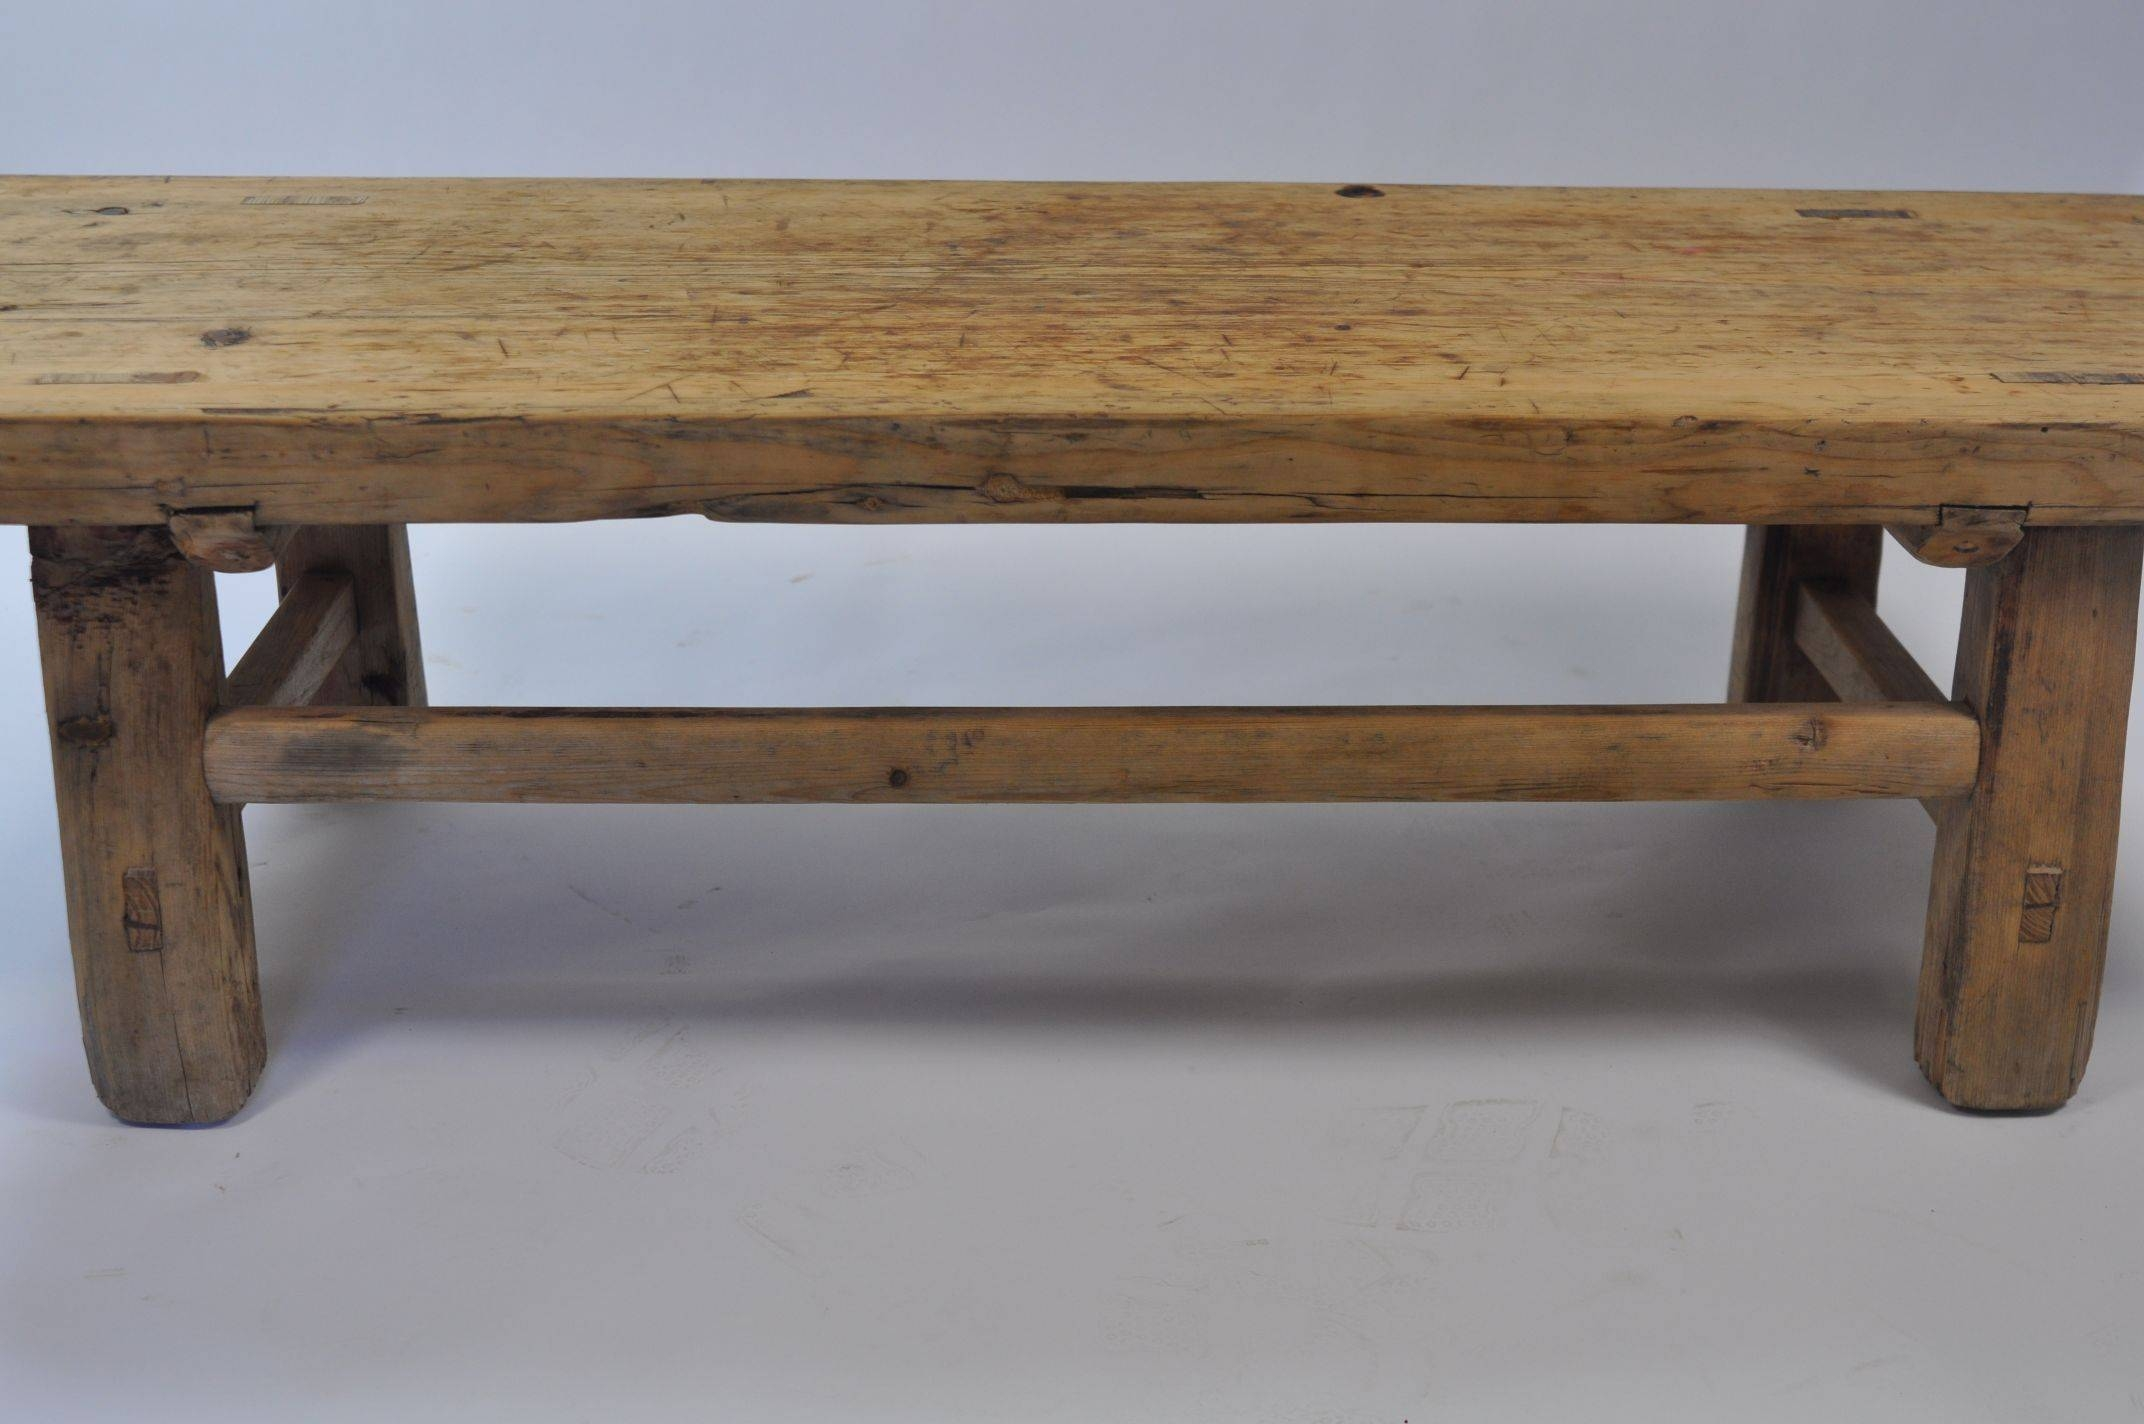 Antique Chinese Pine Coffee Table - Mecox Gardens within Antique Pine Coffee Tables (Image 5 of 30)